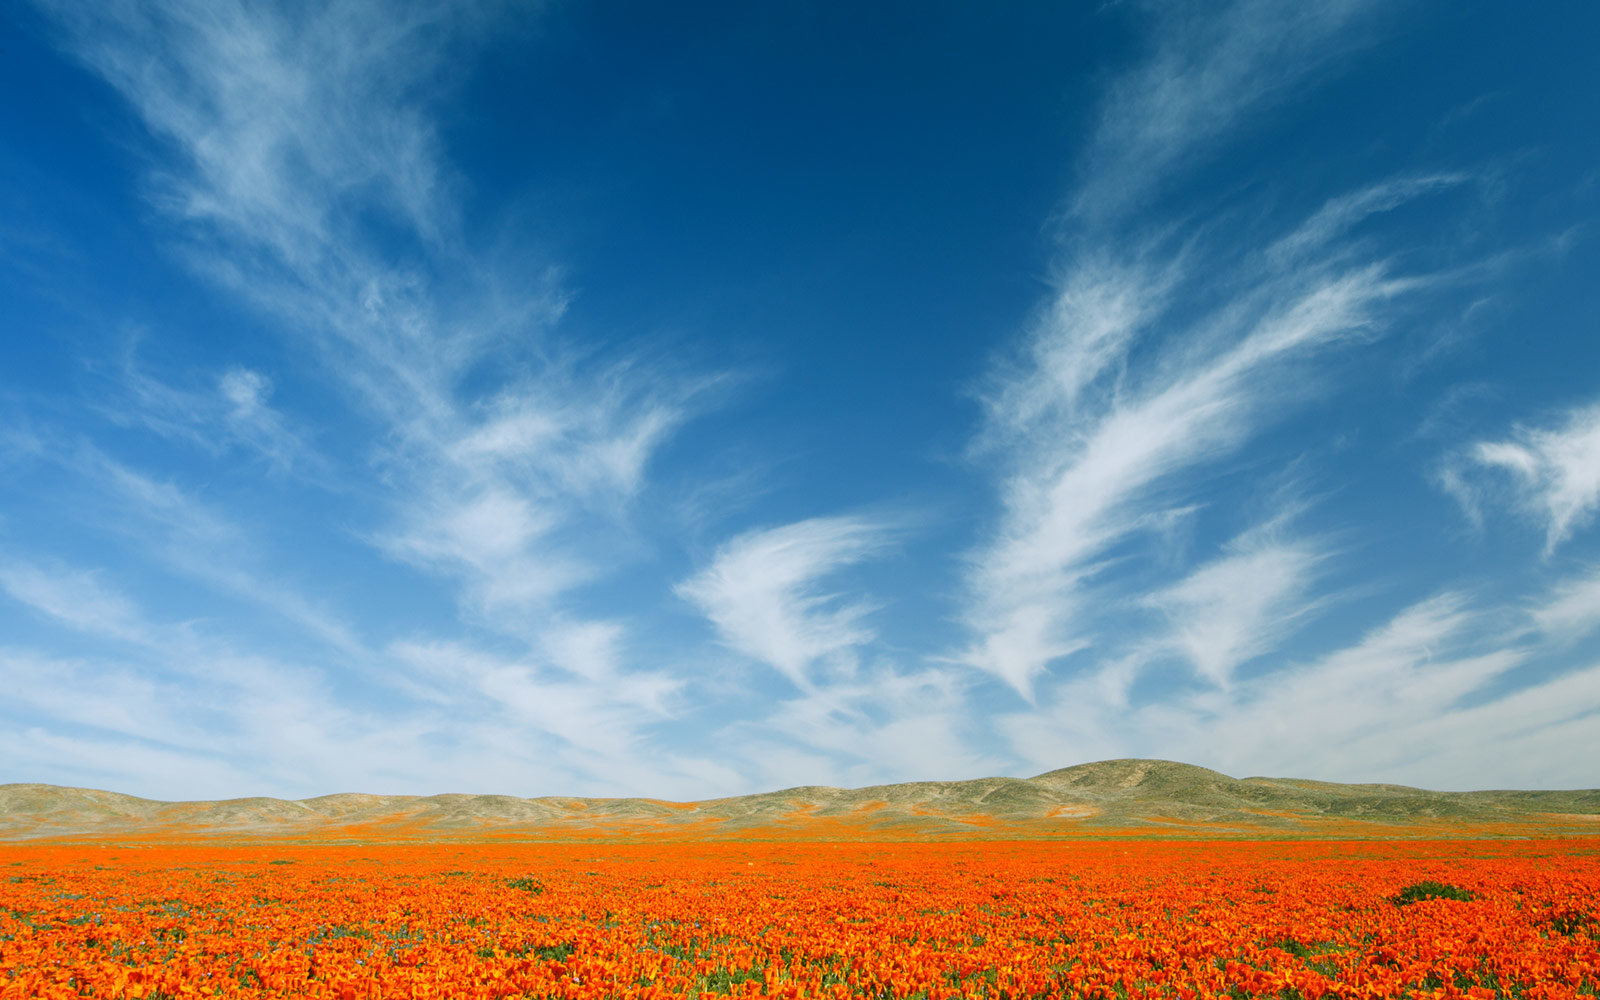 California Poppy Festival in Lancaster, California